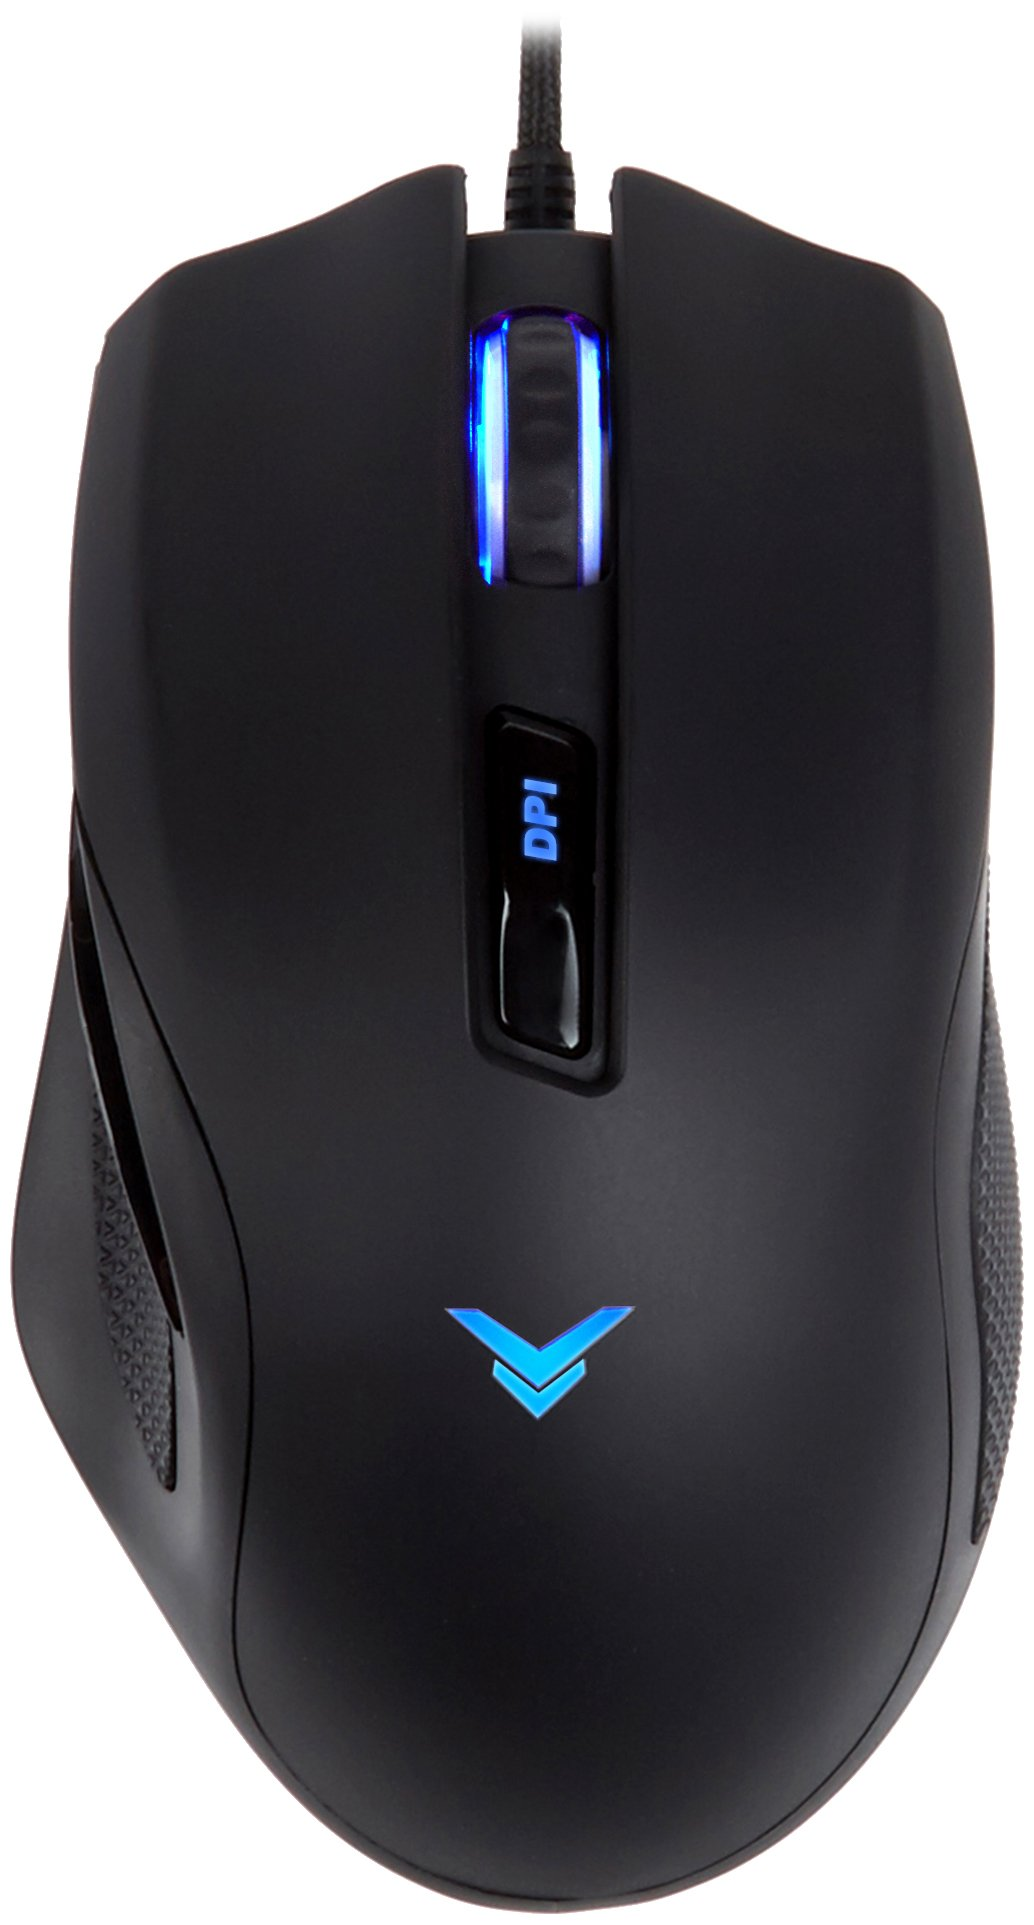 AmazonBasics Multi-Color Gaming Mouse - Programmable Macros, 3200 Adjustable DPI by AmazonBasics